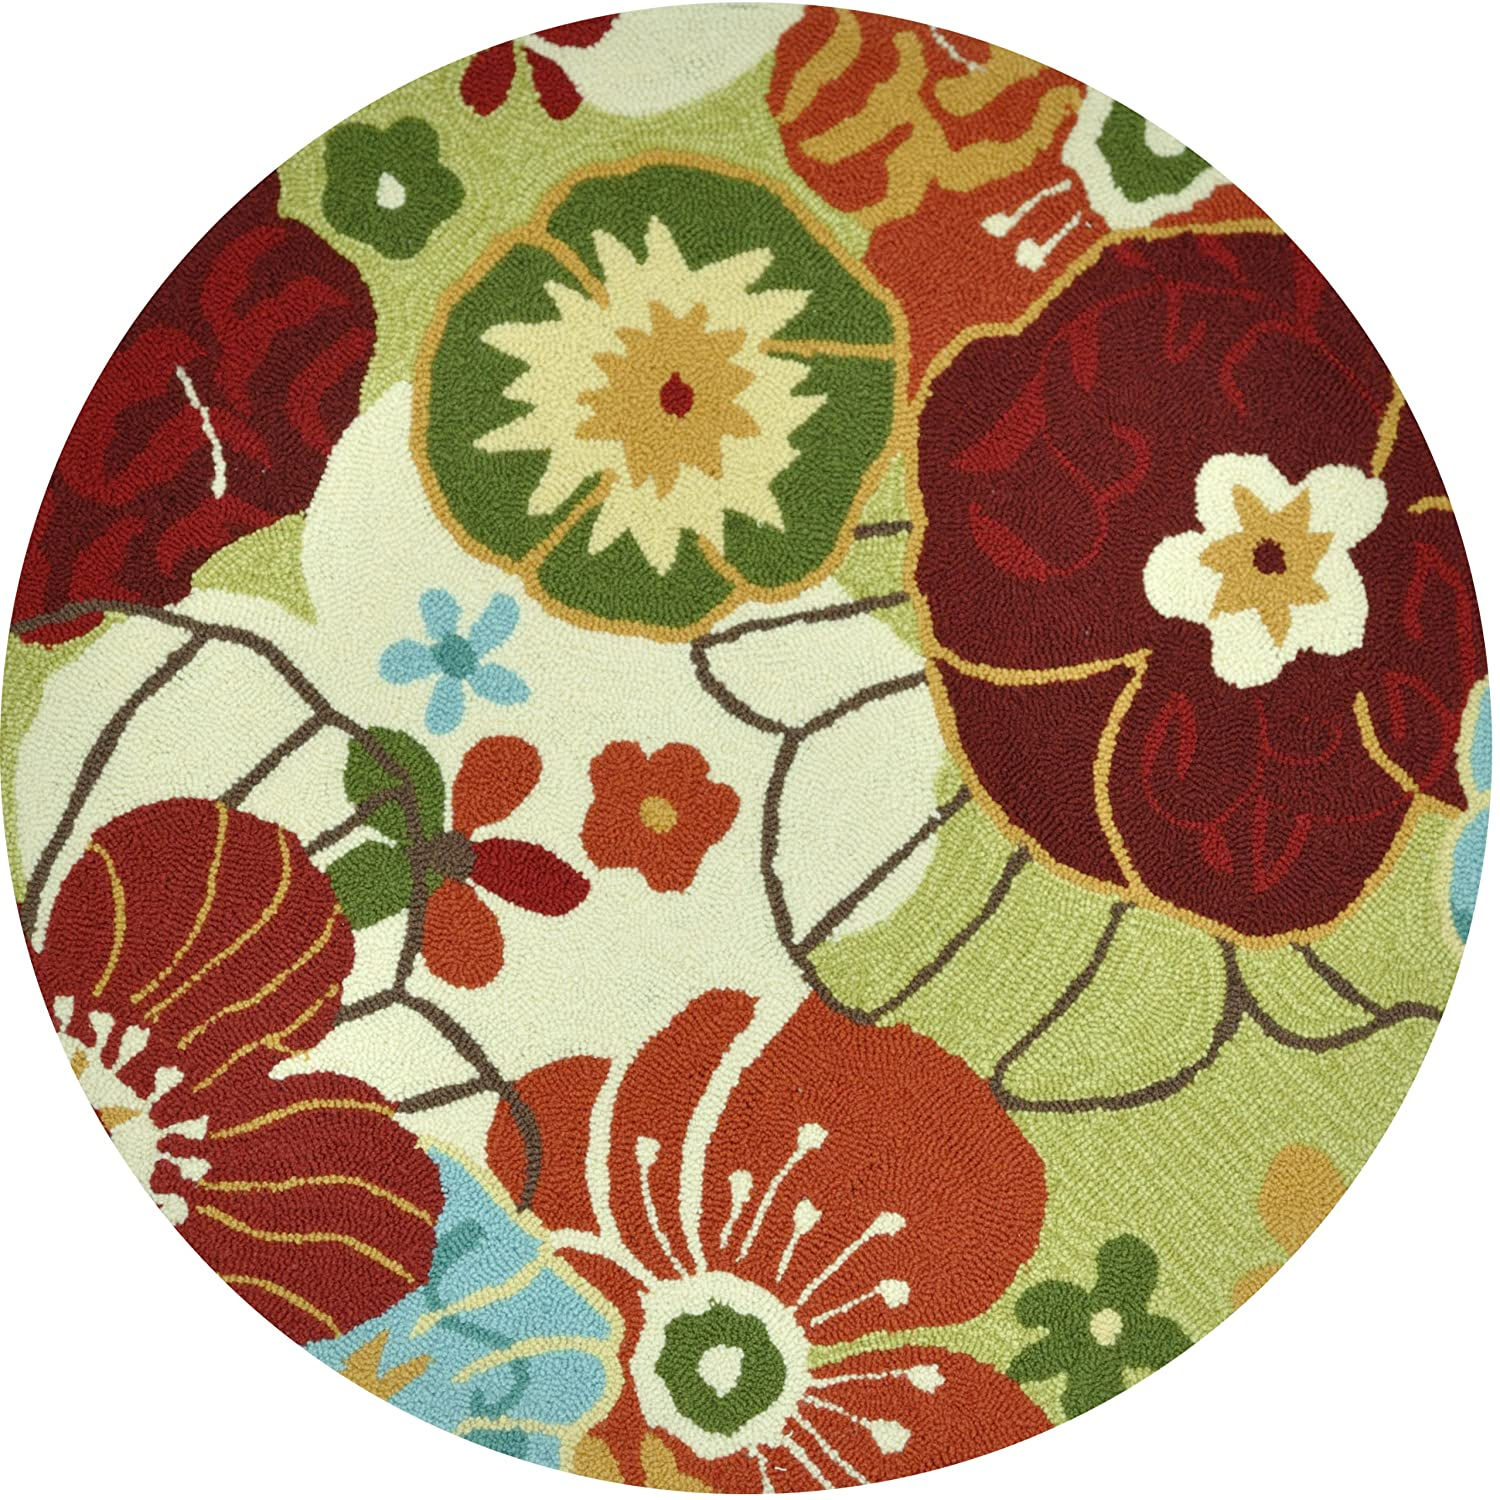 amazoncom loloi rugs summerton collection 100percent polyester round area rug 3feet by 3feet limemulti kitchen u0026 dining